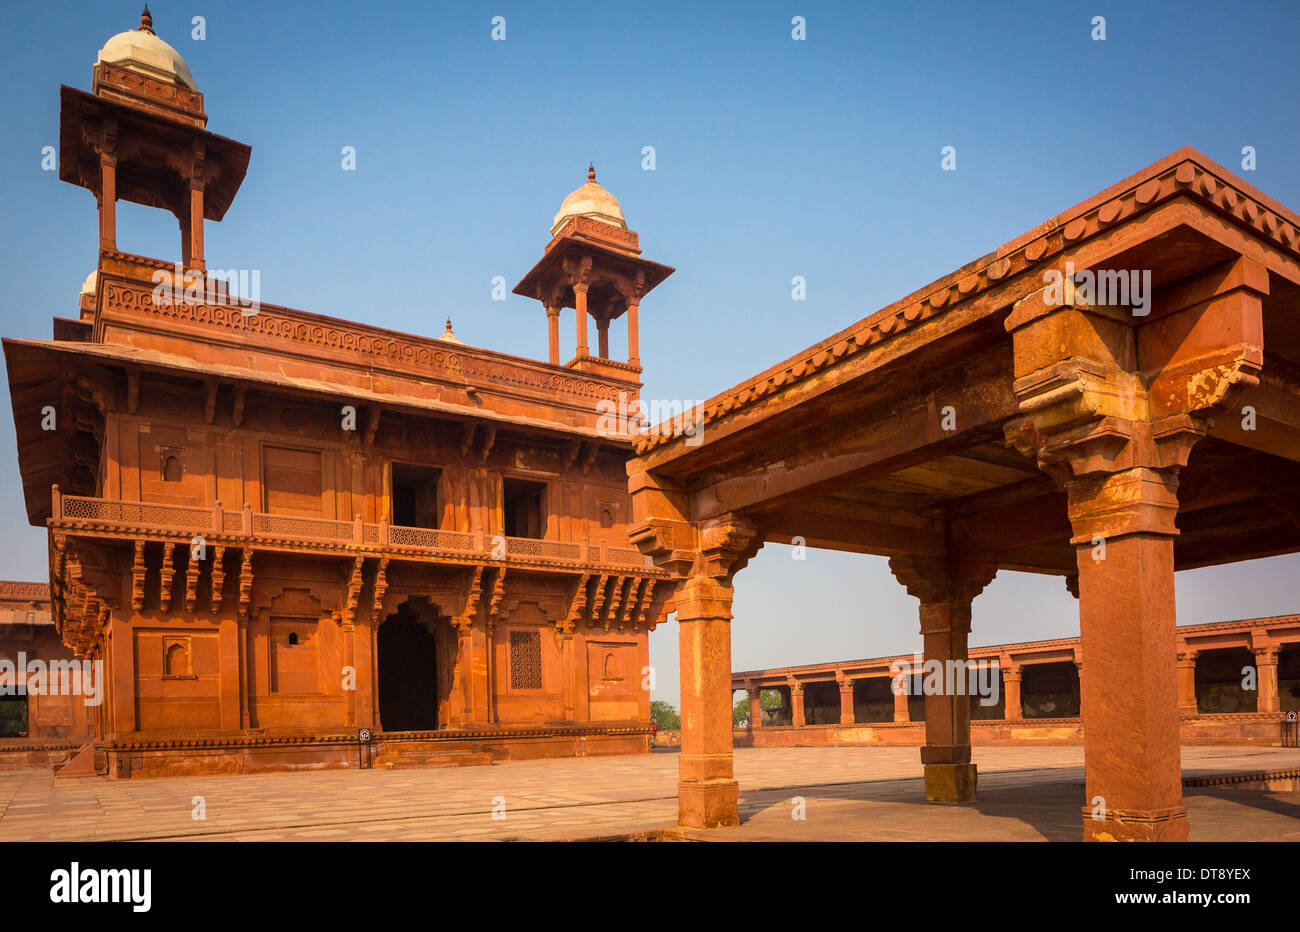 Fatehpur Sikri is a city and a municipal board in Agra district in the state of Uttar Pradesh, India. - Stock Image